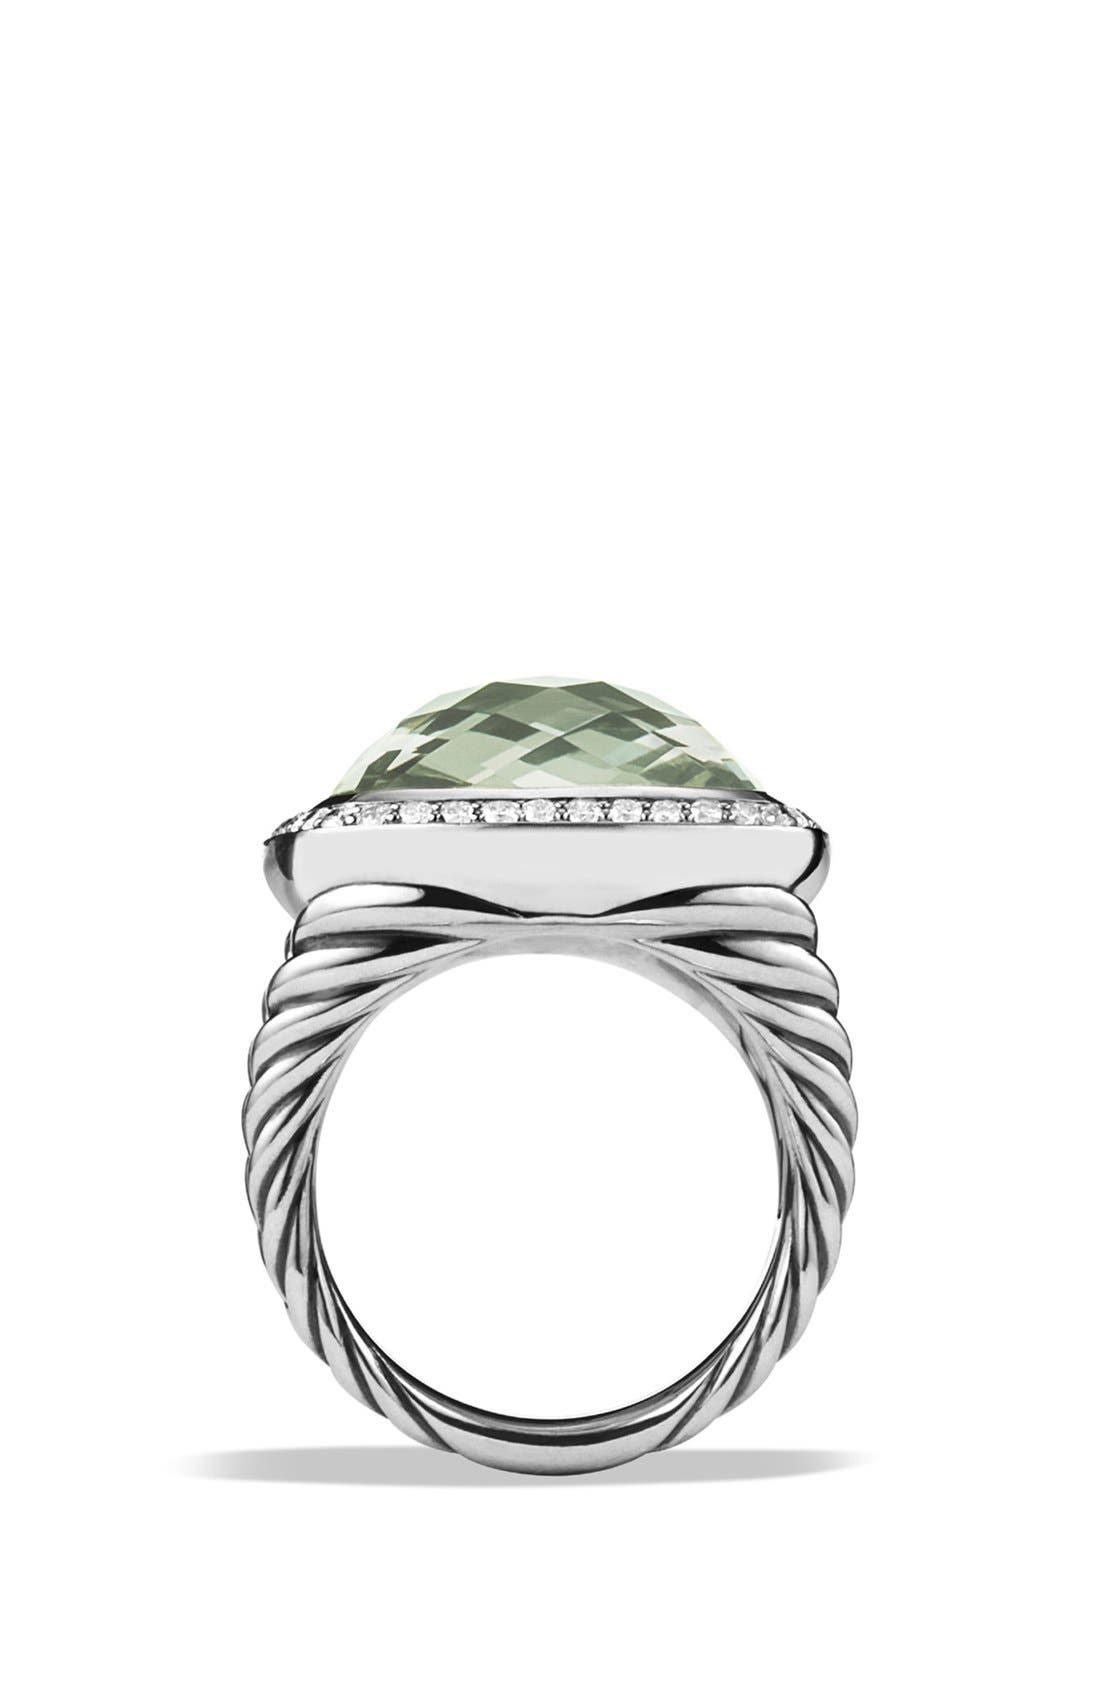 DAVID YURMAN,                             'Albion' Ring with Diamonds,                             Alternate thumbnail 2, color,                             PRASIOLITE